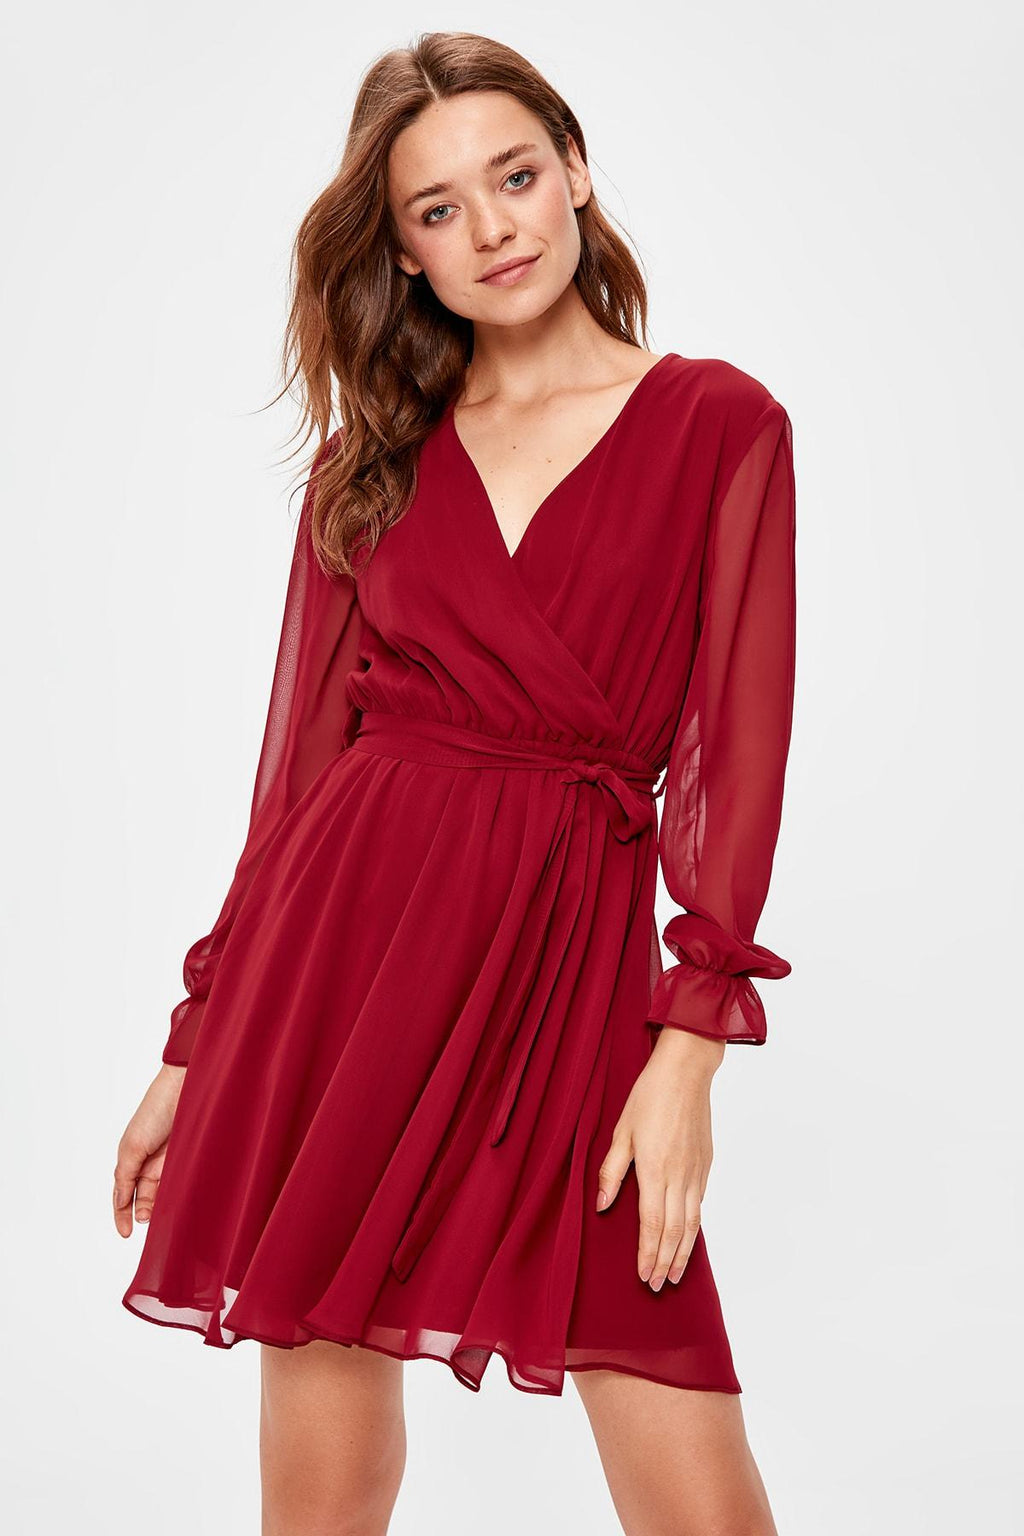 Burgundy Belted Dress - emuuz.com